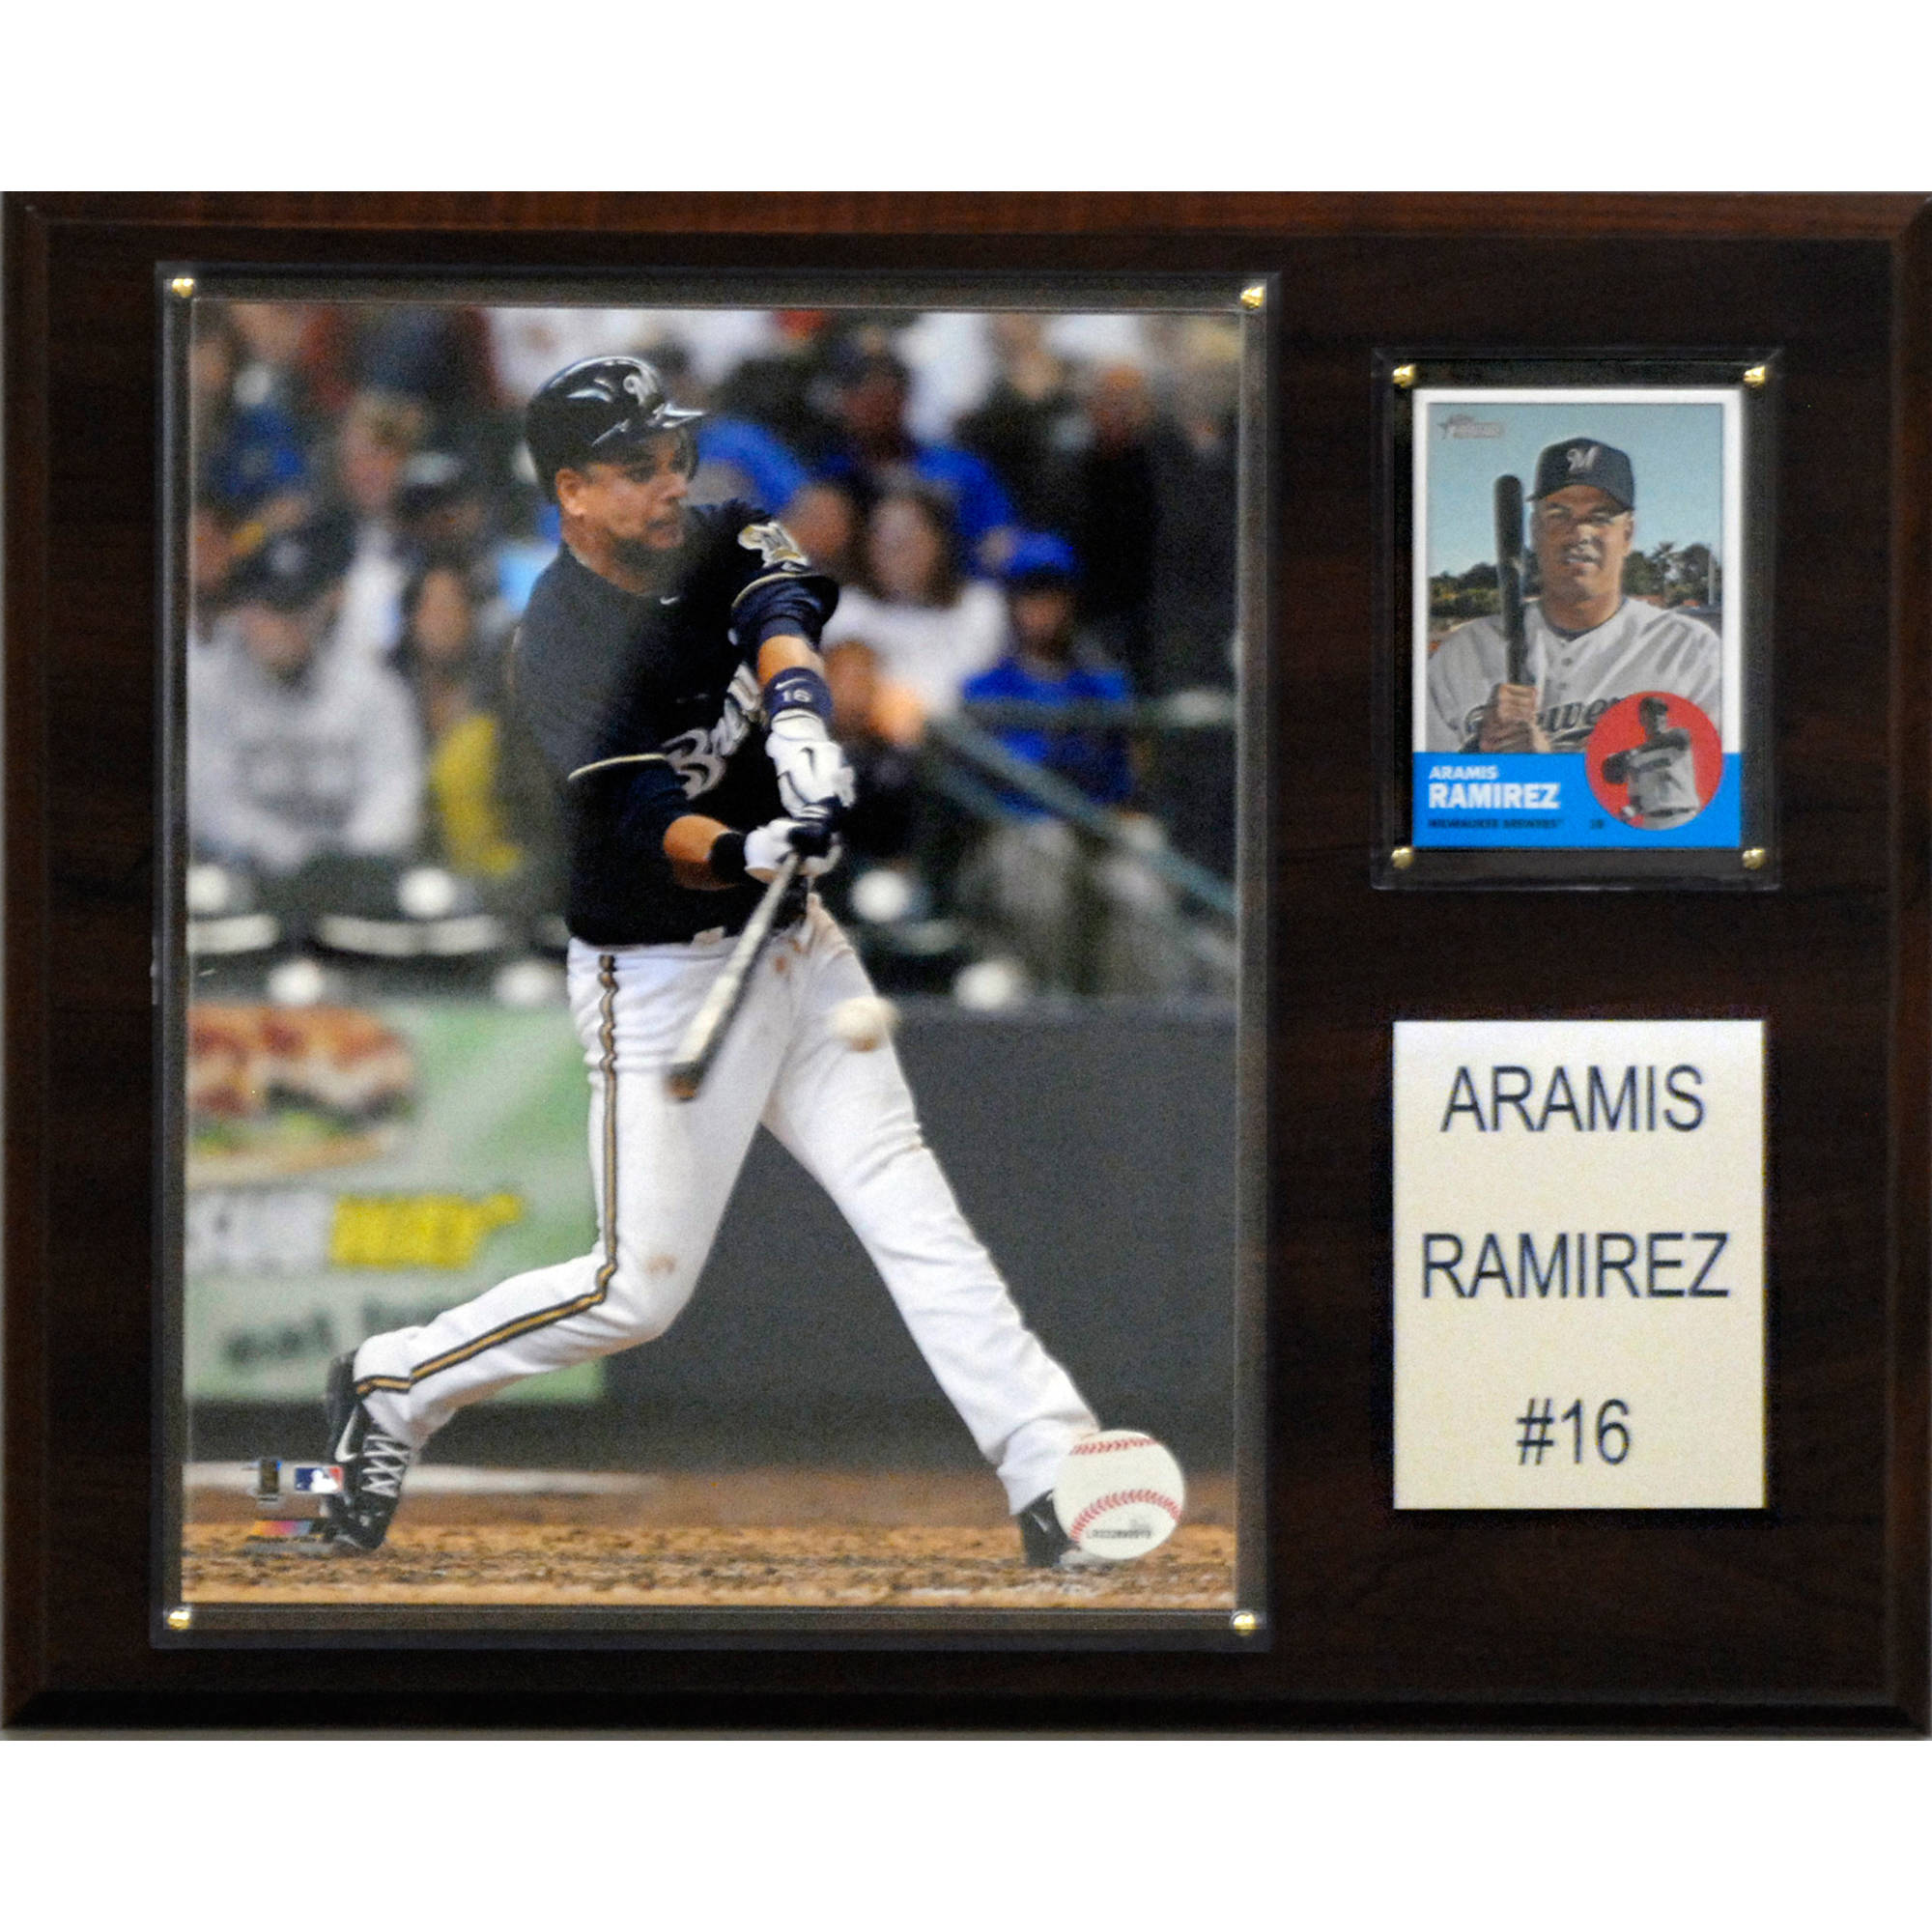 C&I Collectables MLB 12x15 Aramis Ramirez Milwaukee Brewers Player Plaque